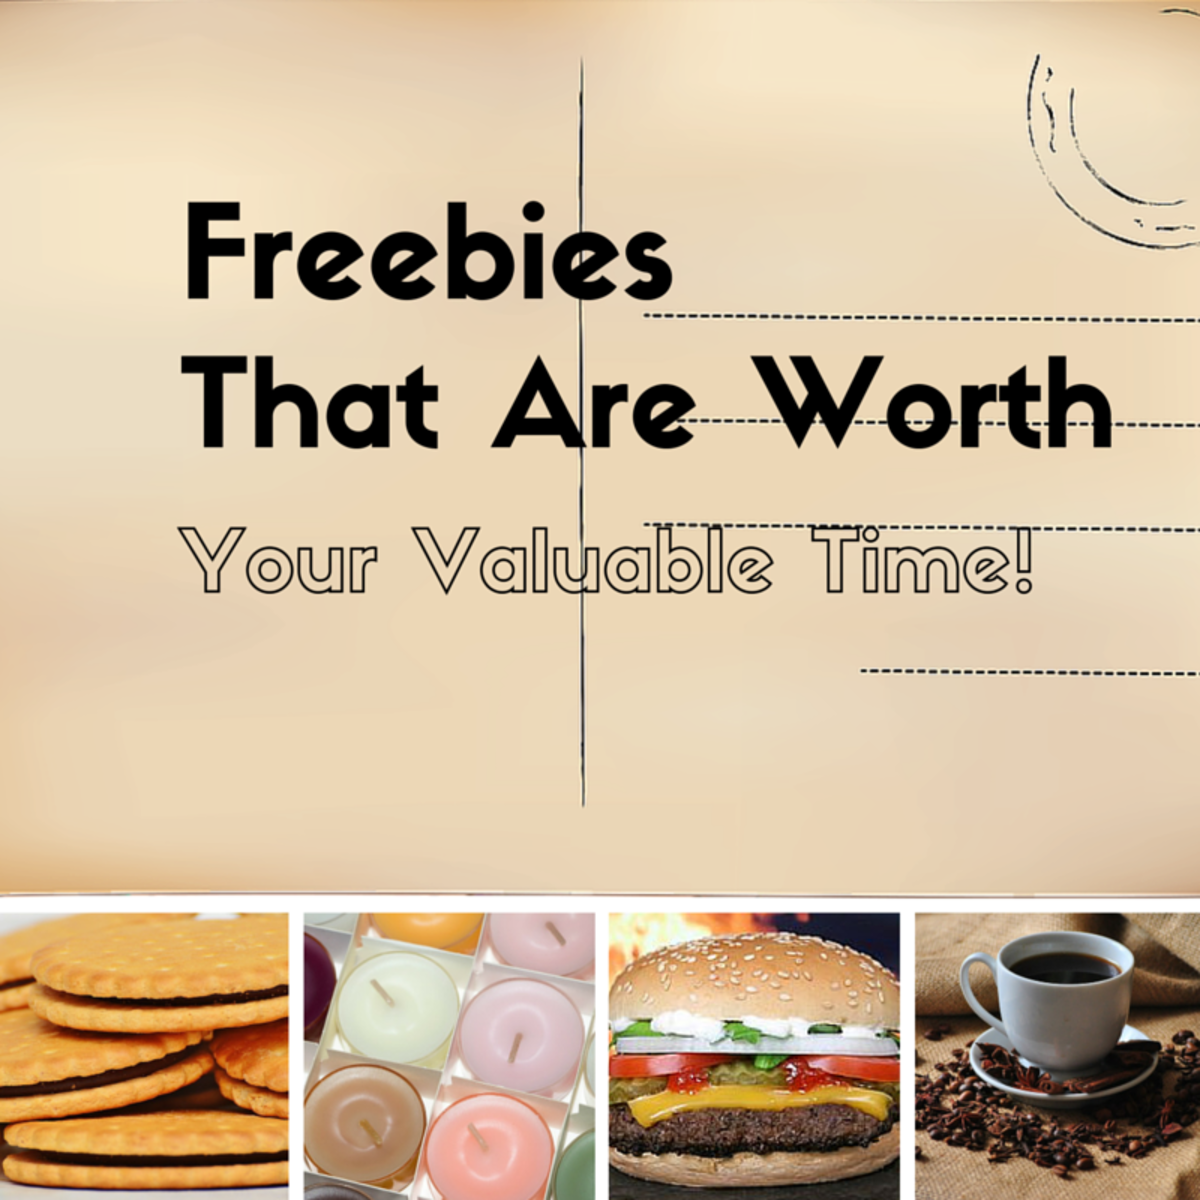 These clever methods will get you more freebies than you'd ever think possible!